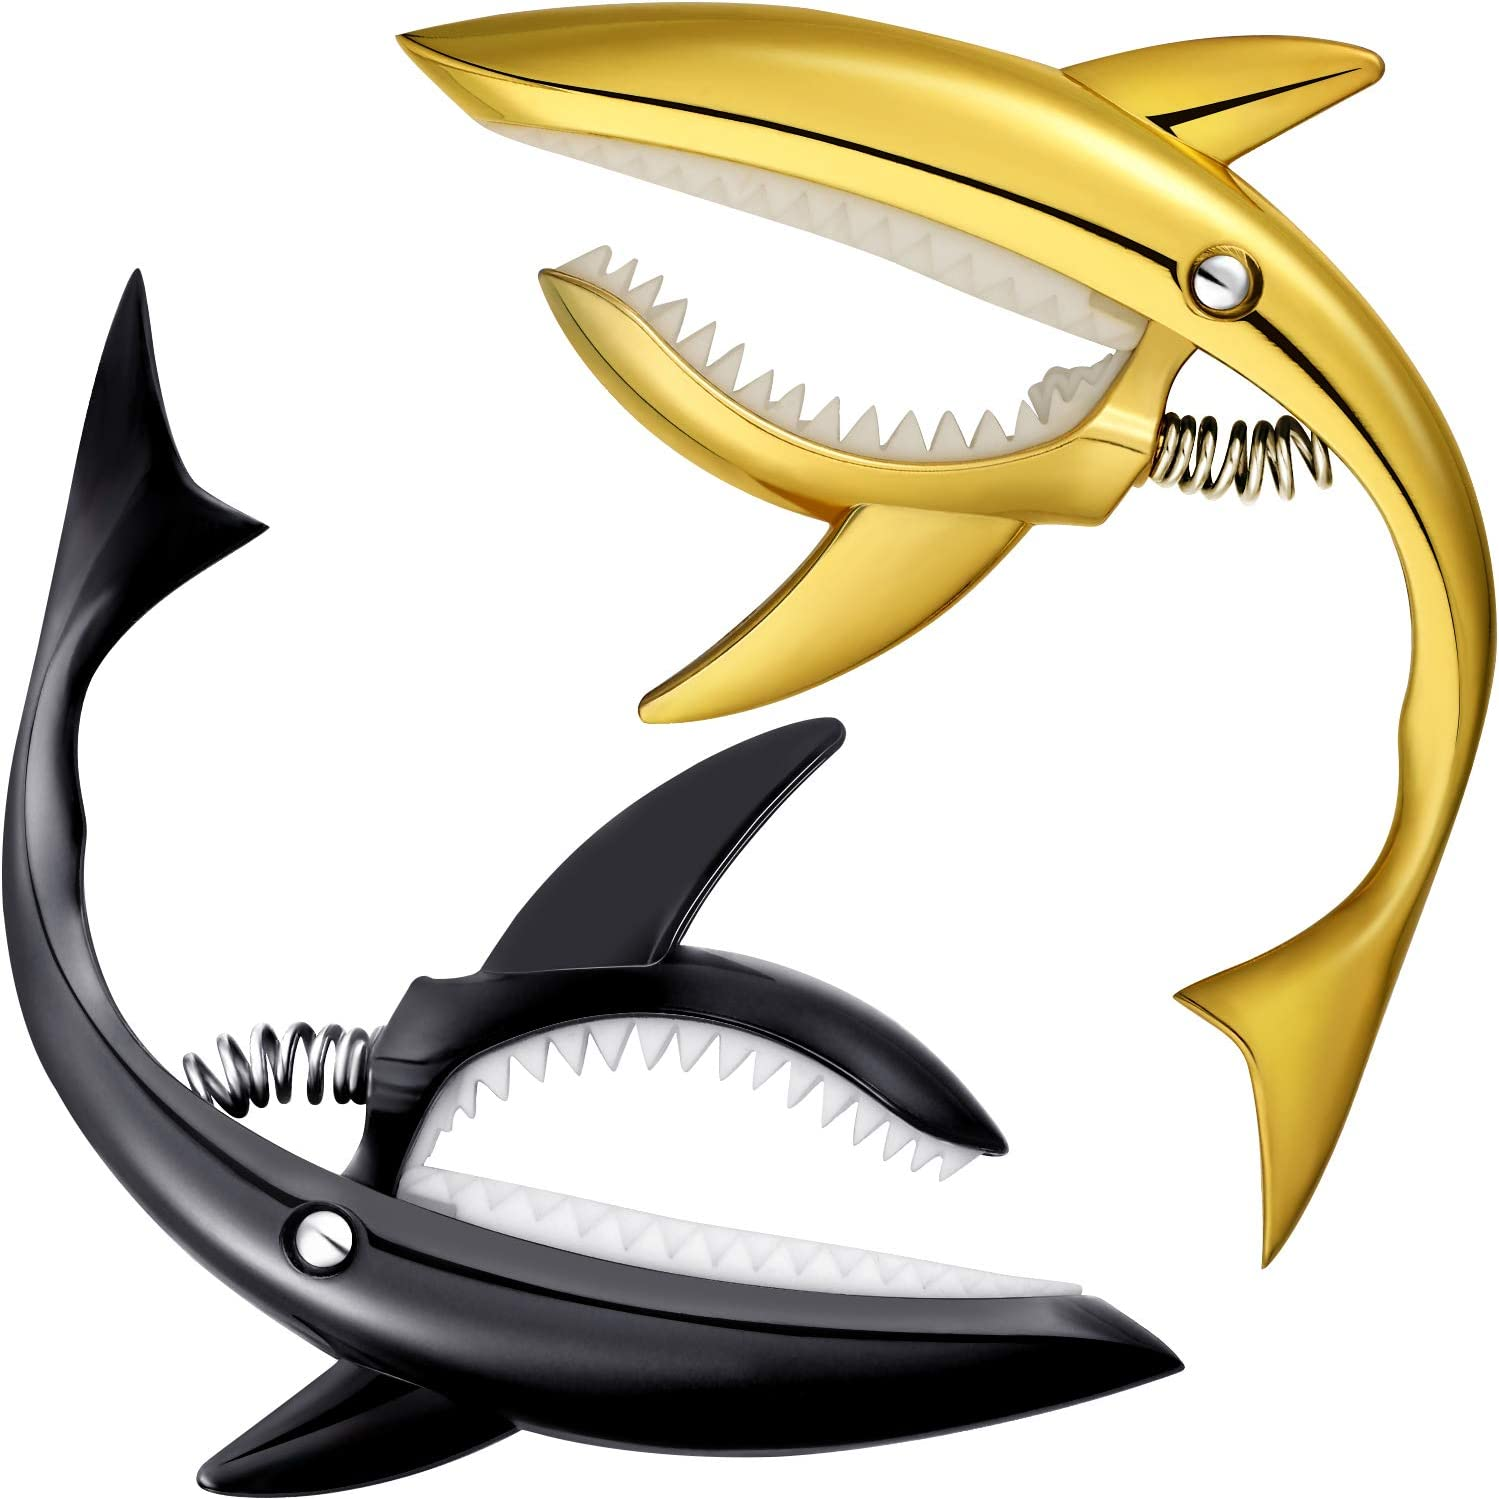 2 Pieces Zinc Alloy Guitar Capos Black and Gold Shark Capo for Acoustic and Electric Guitar Bass and 6 Pieces Guitar Picks